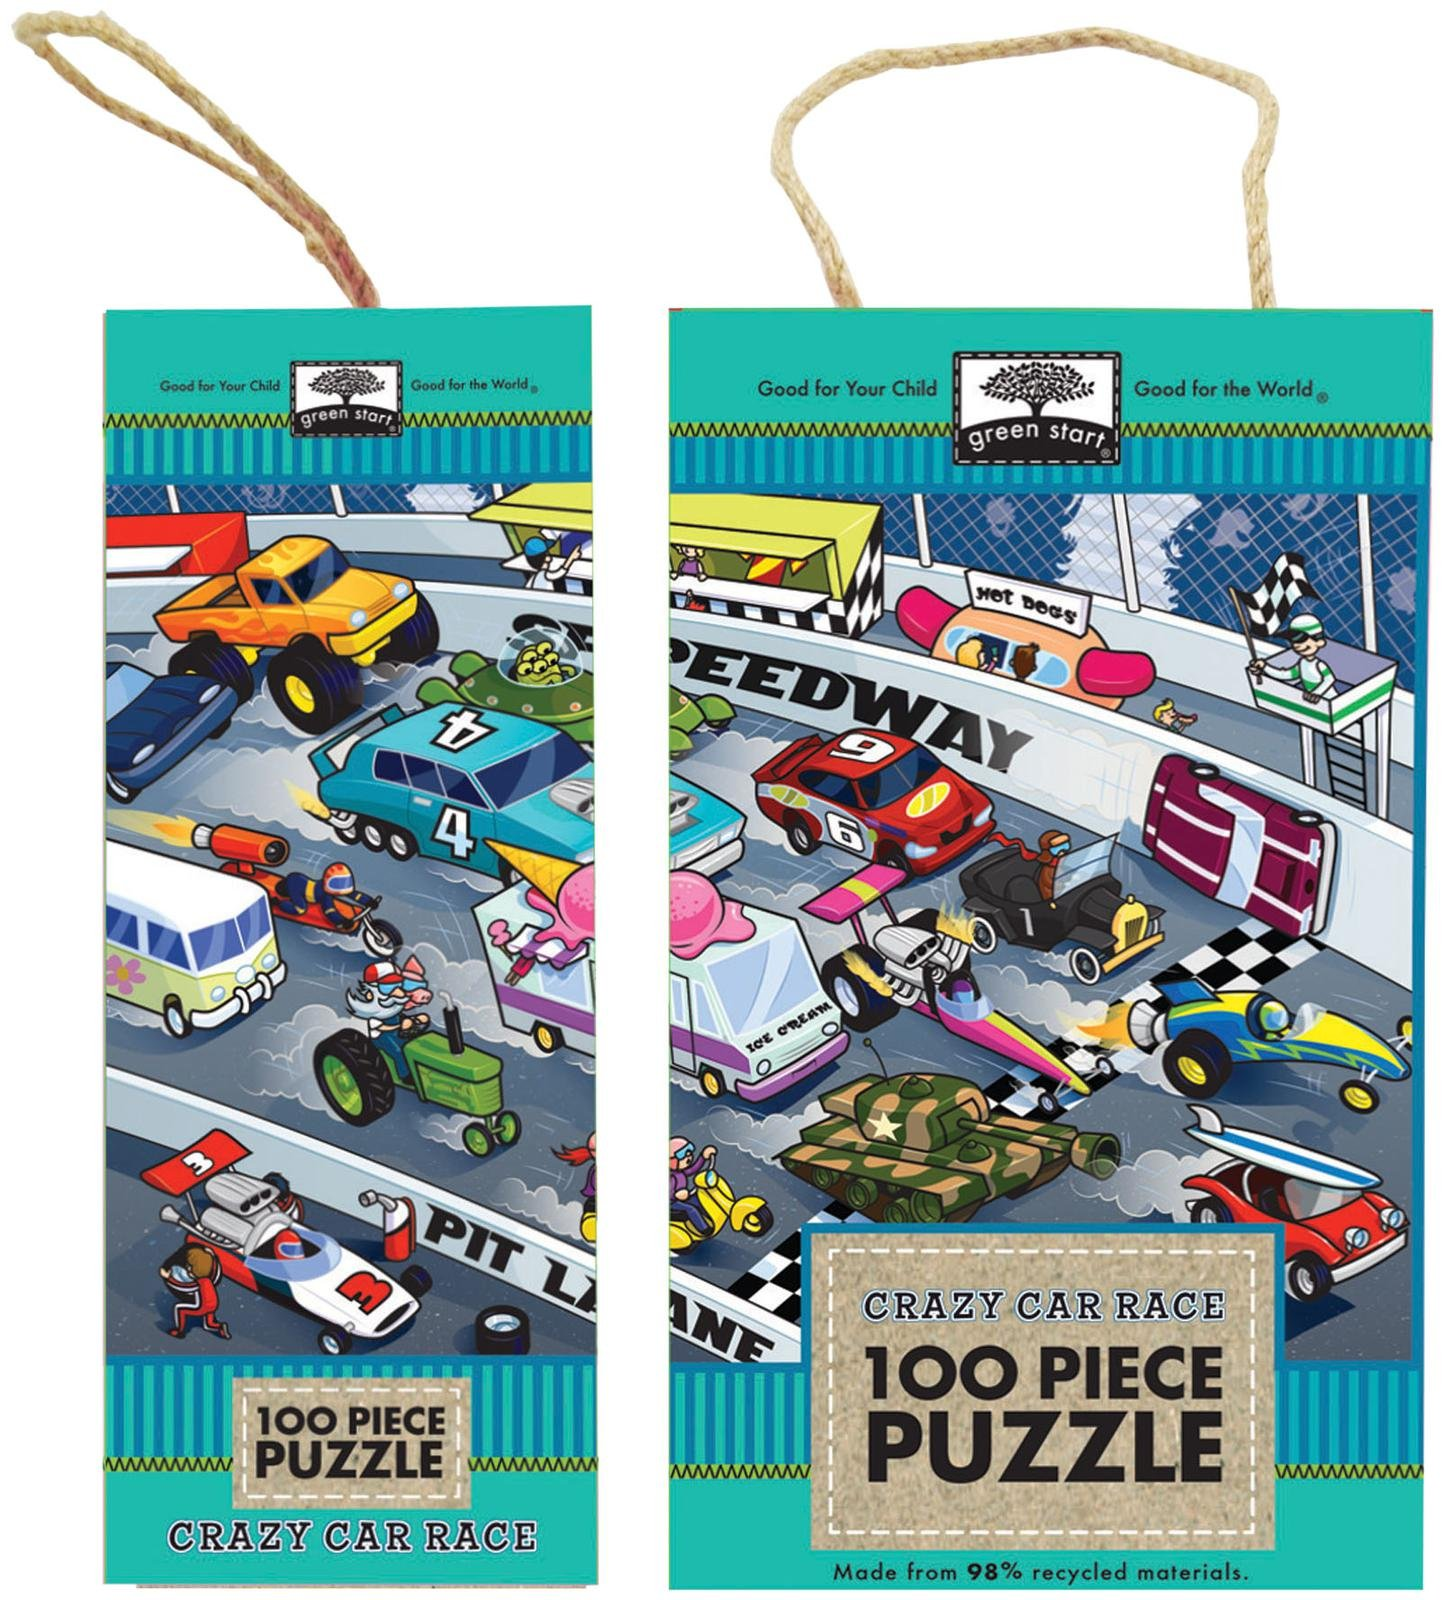 Green start 100 piece puzzles amy 39 s ot for kids and educational learning toys - Homes built from recycled materials nasas outer space challenge ...